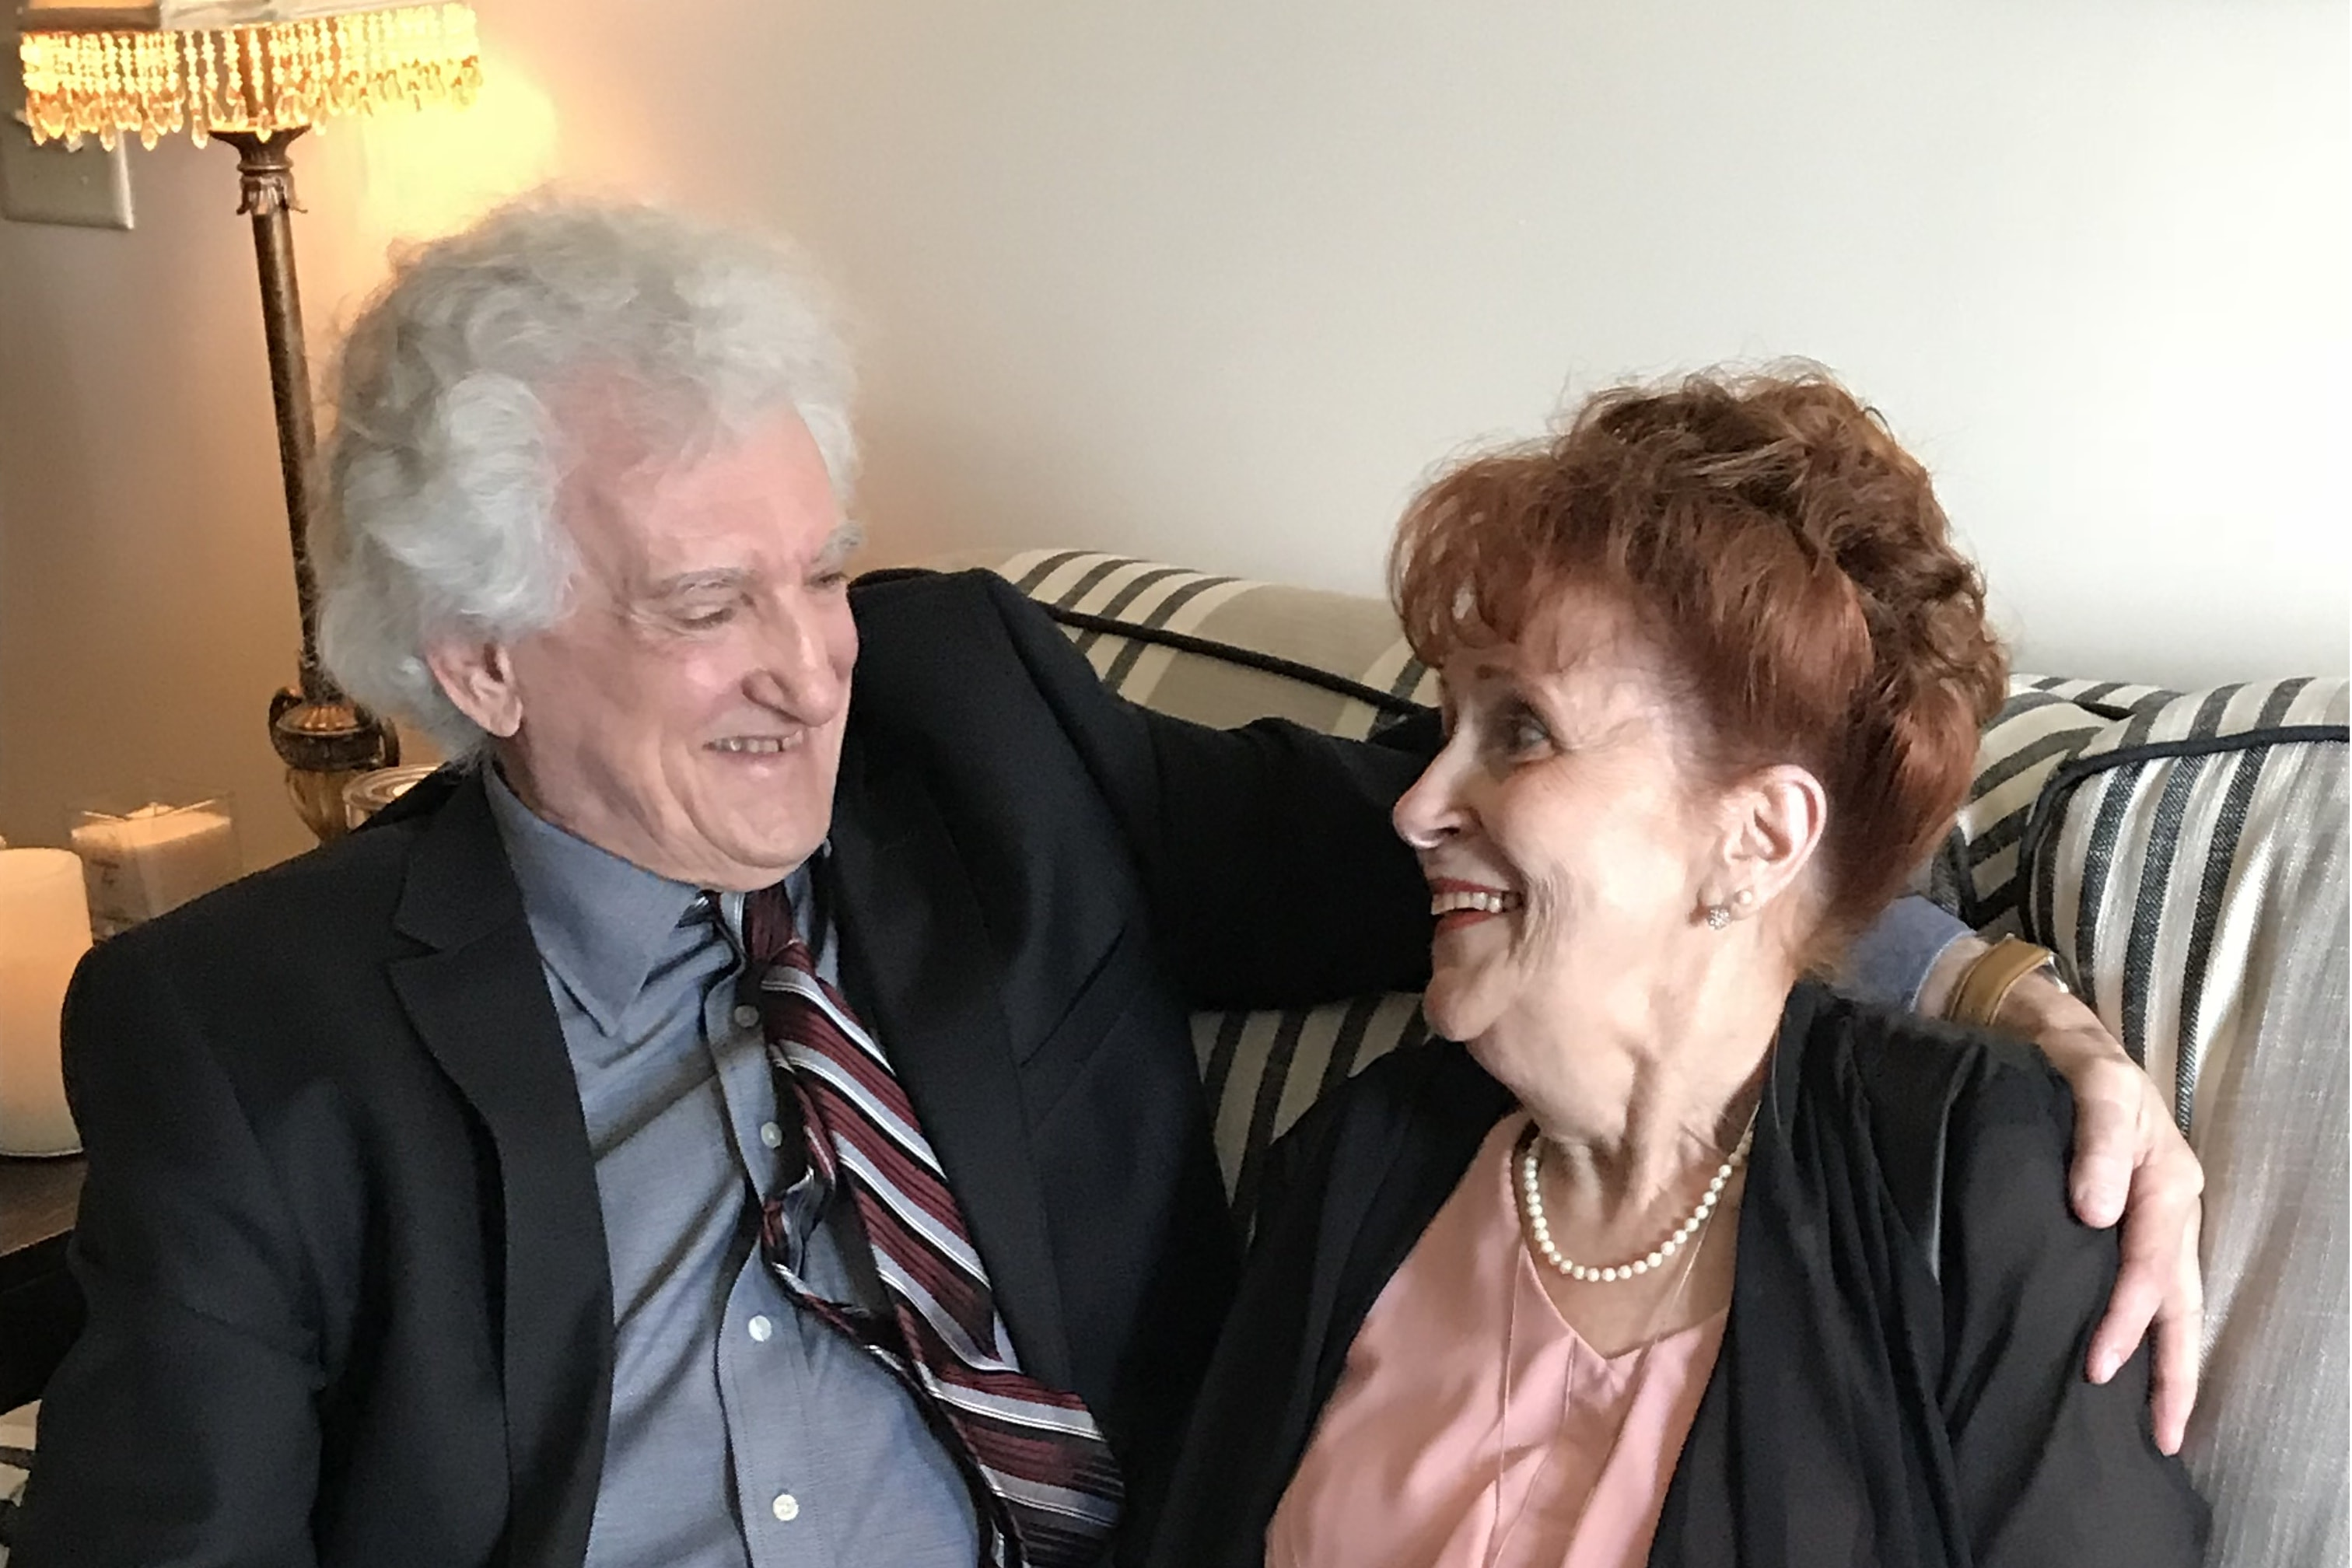 The Gift of Finding New Love at 80